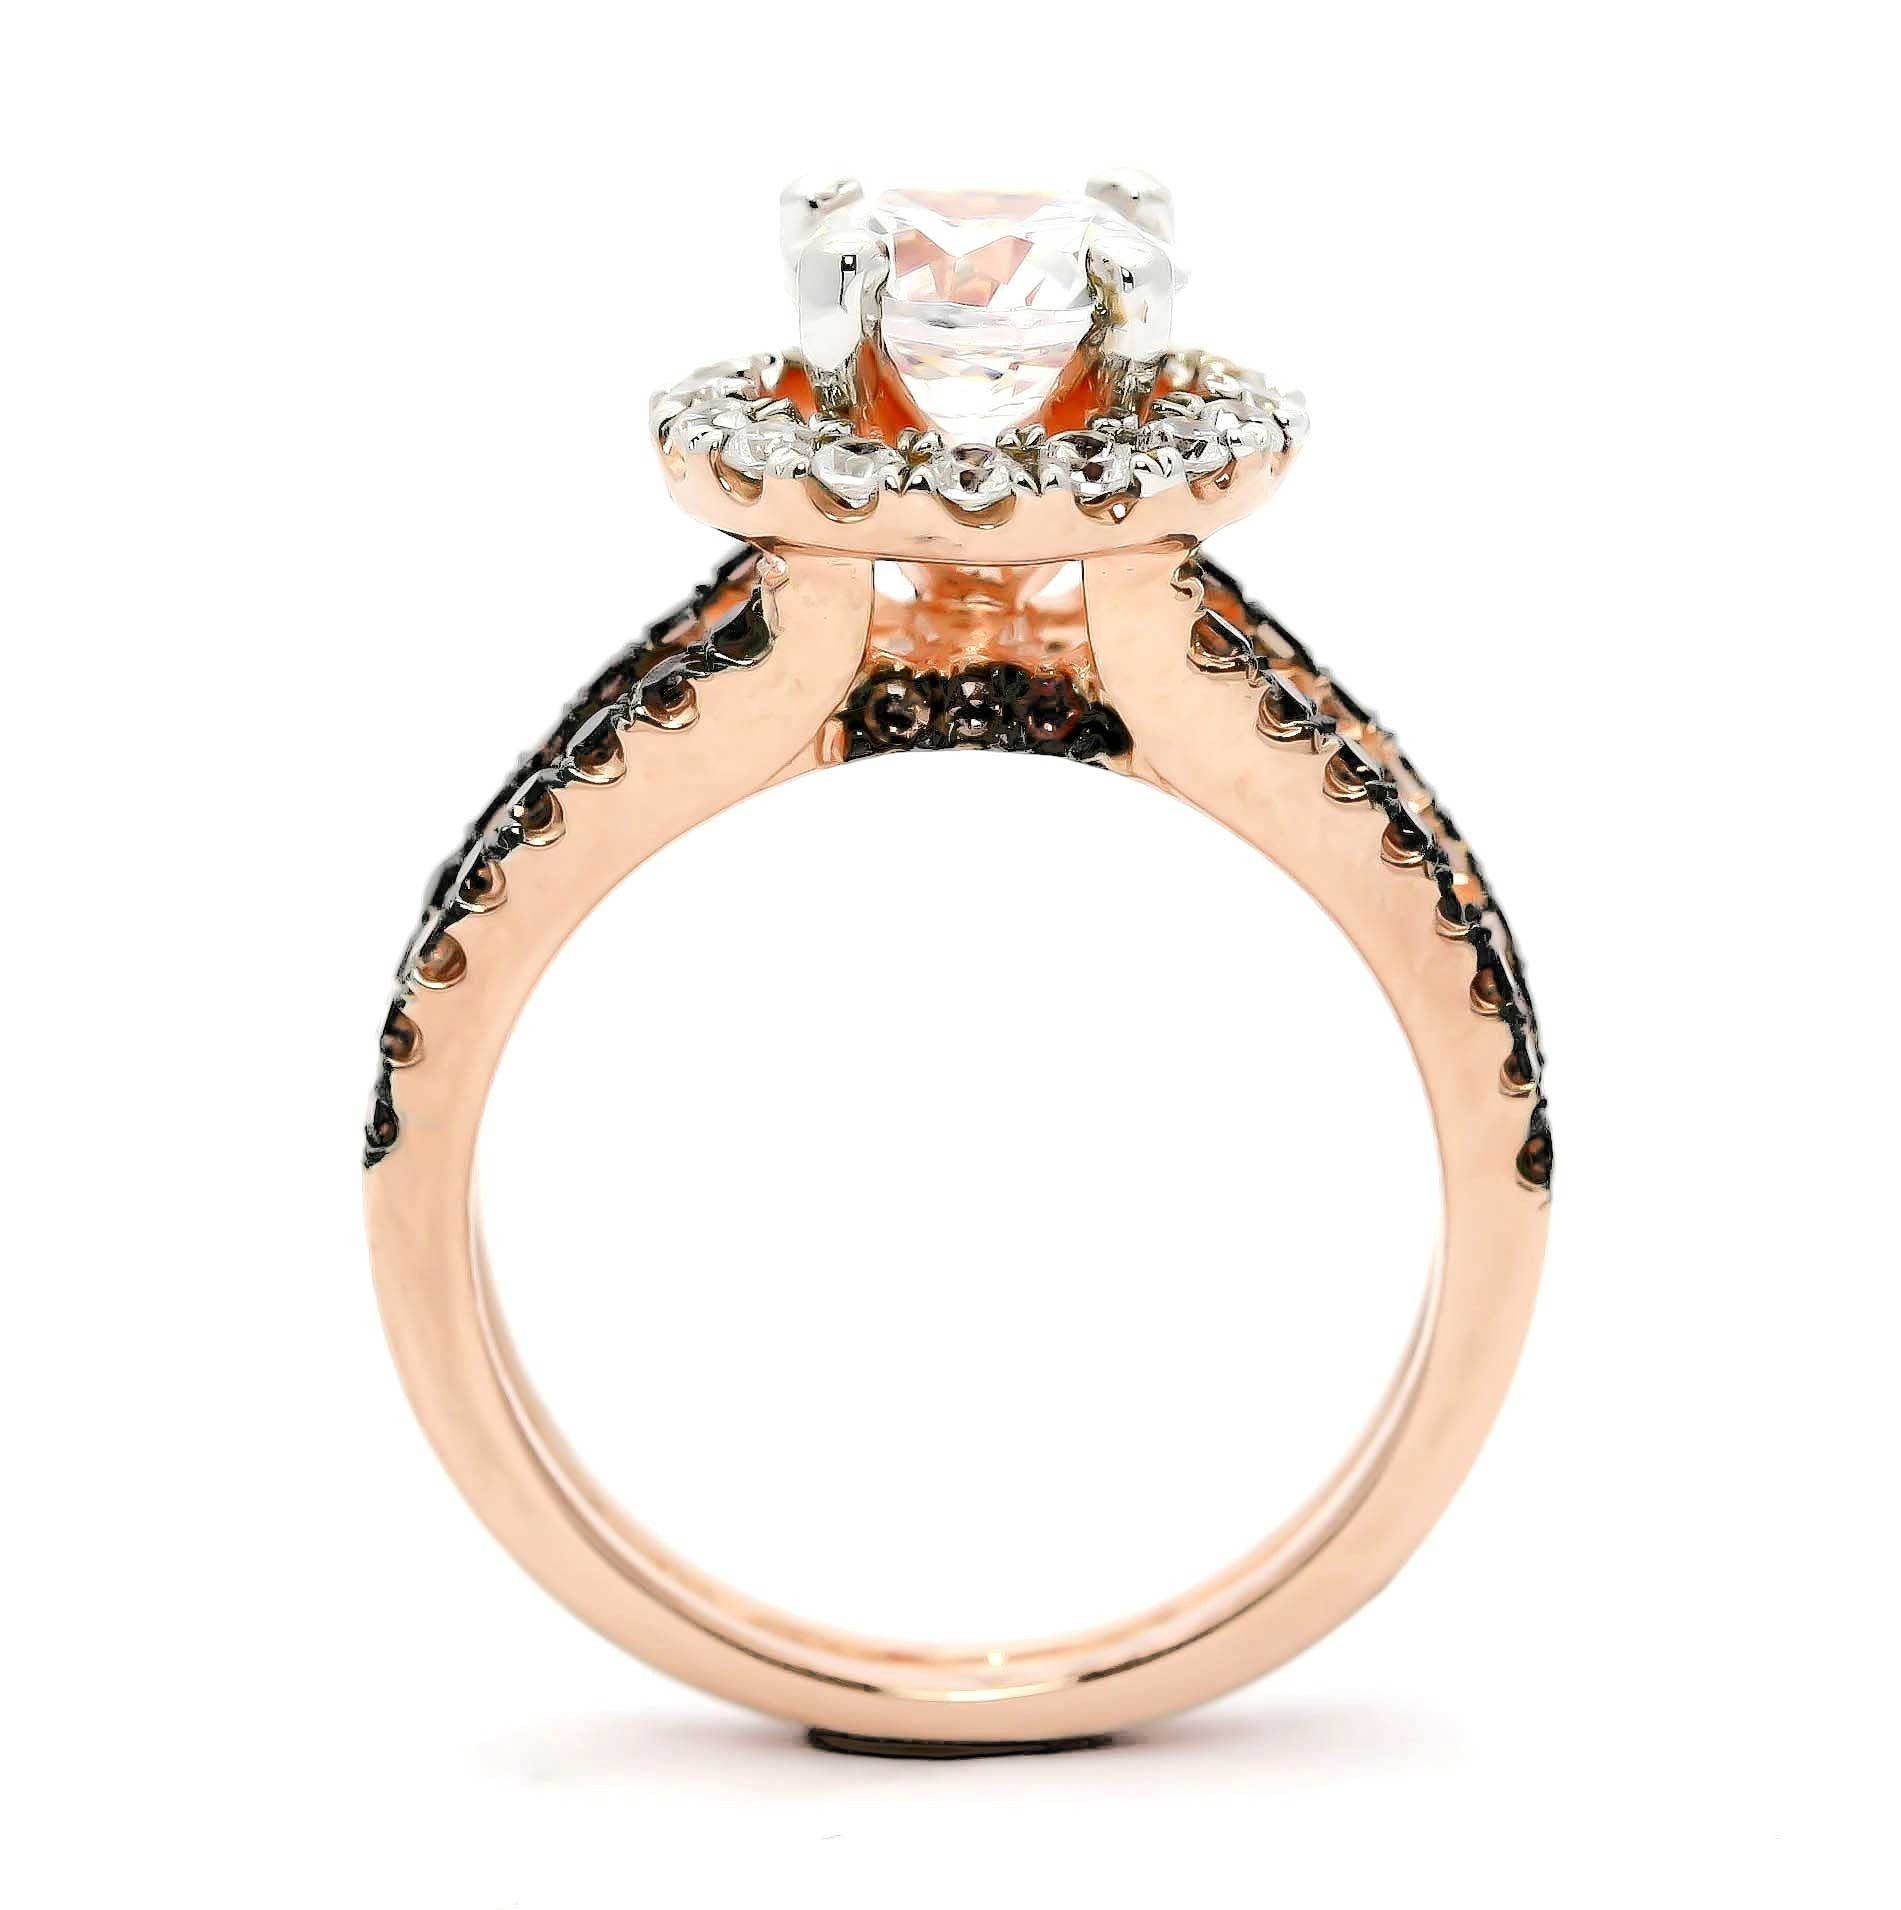 1 Carat Morganite with Black Diamonds, Floating Halo Rose Gold Engagement Ring With 1.02 Carats of White and Black Diamonds, Anniversary Ring - MG94654B